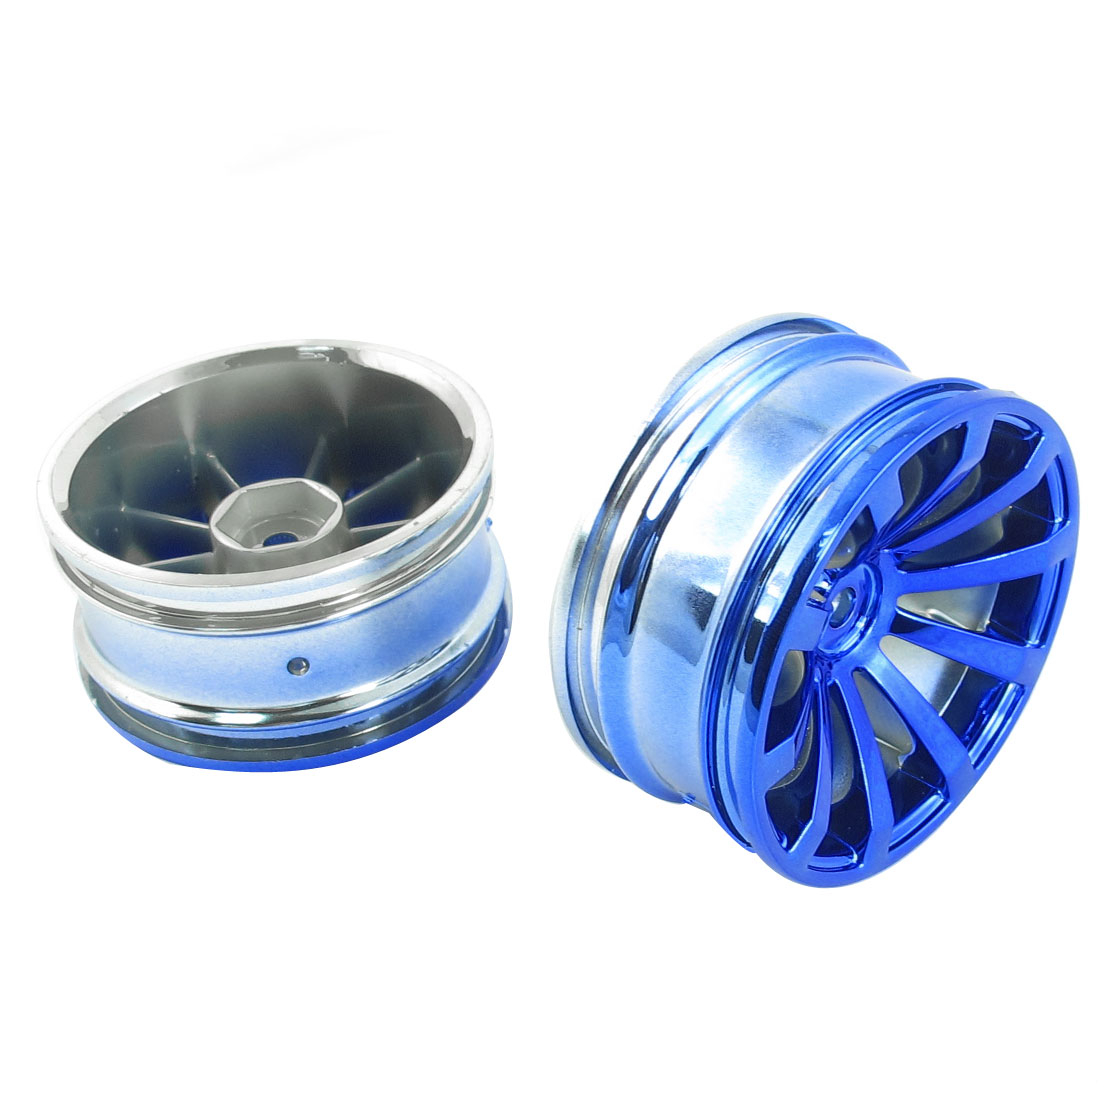 2 Pcs Blue Drift Chrome Wheel Rim for 1/10 Scale RC Racing Car